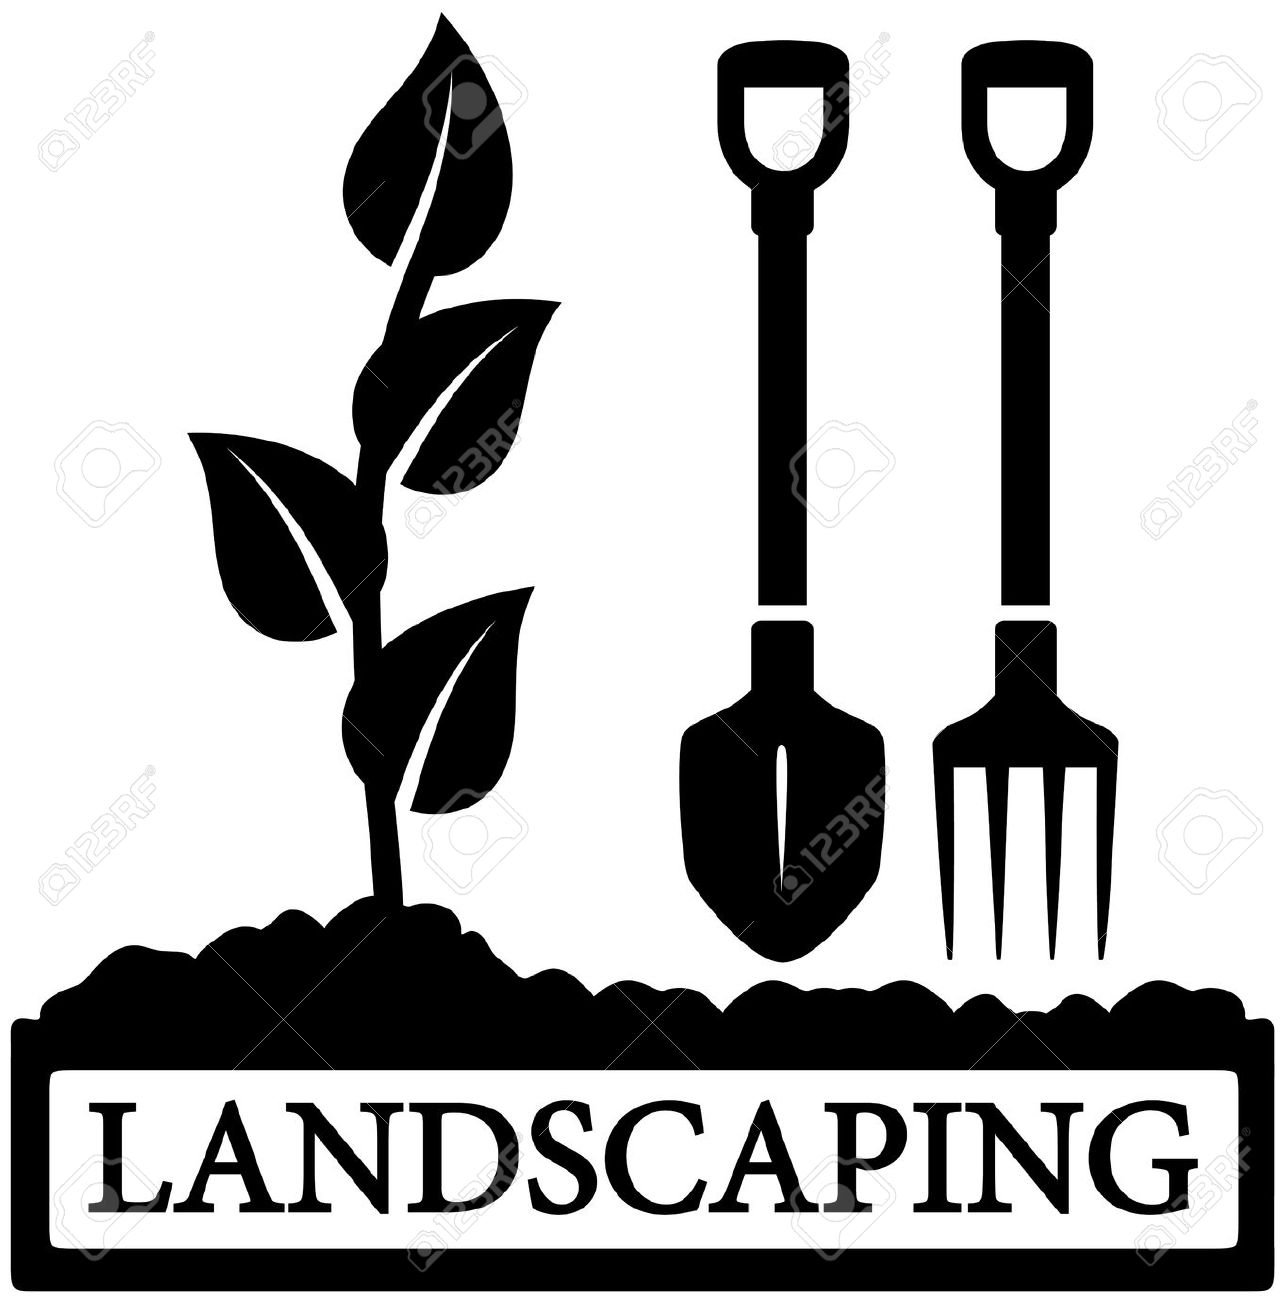 clip art clipartlook. Landscape clipart landscaping tool